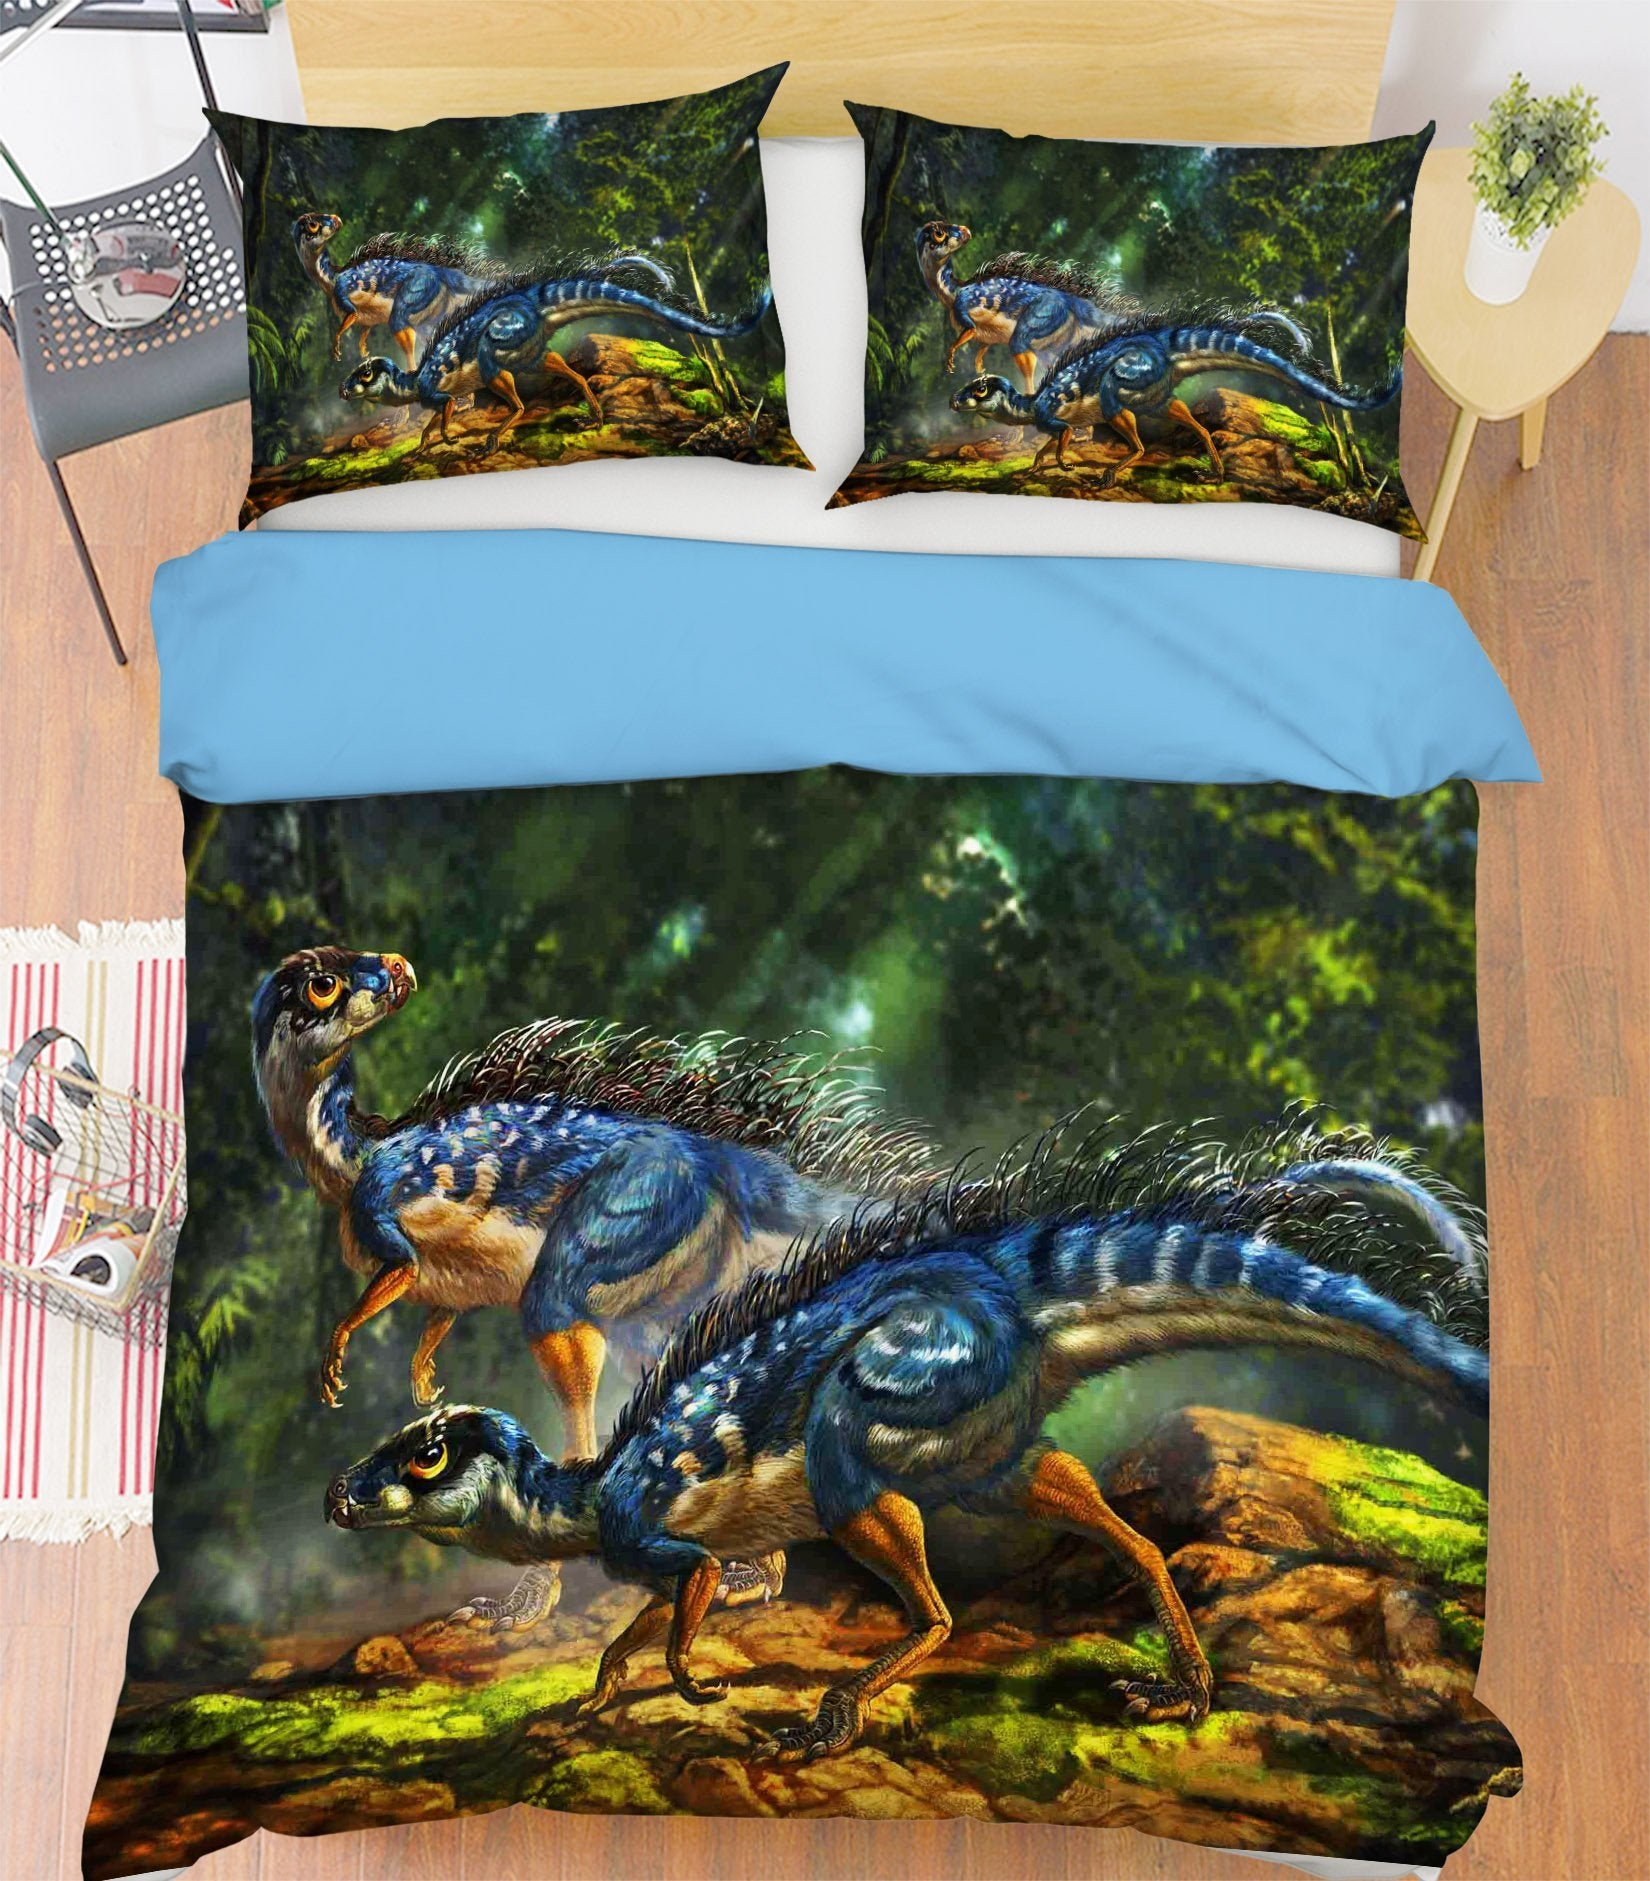 3D Blue Dragon 073 Bed Pillowcases Quilt Wallpaper AJ Wallpaper